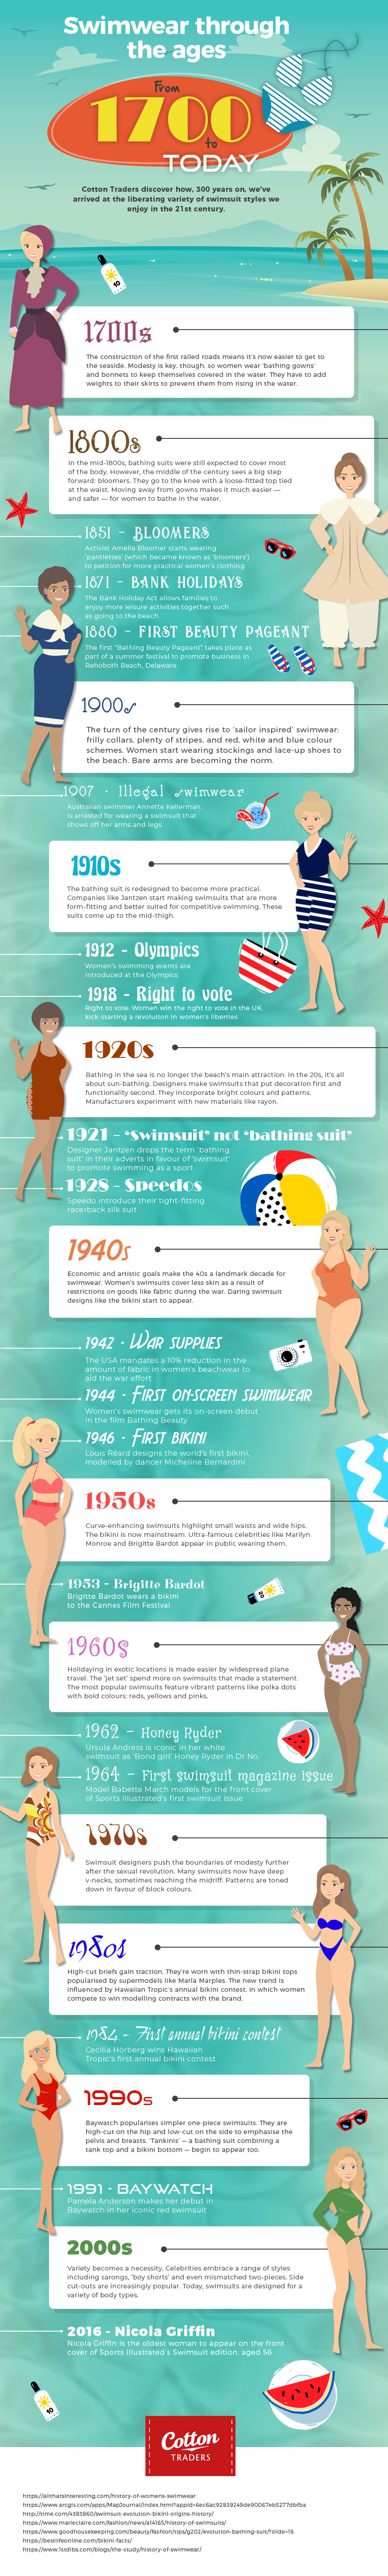 From 1700 to Today: Swimwear Through the Ages